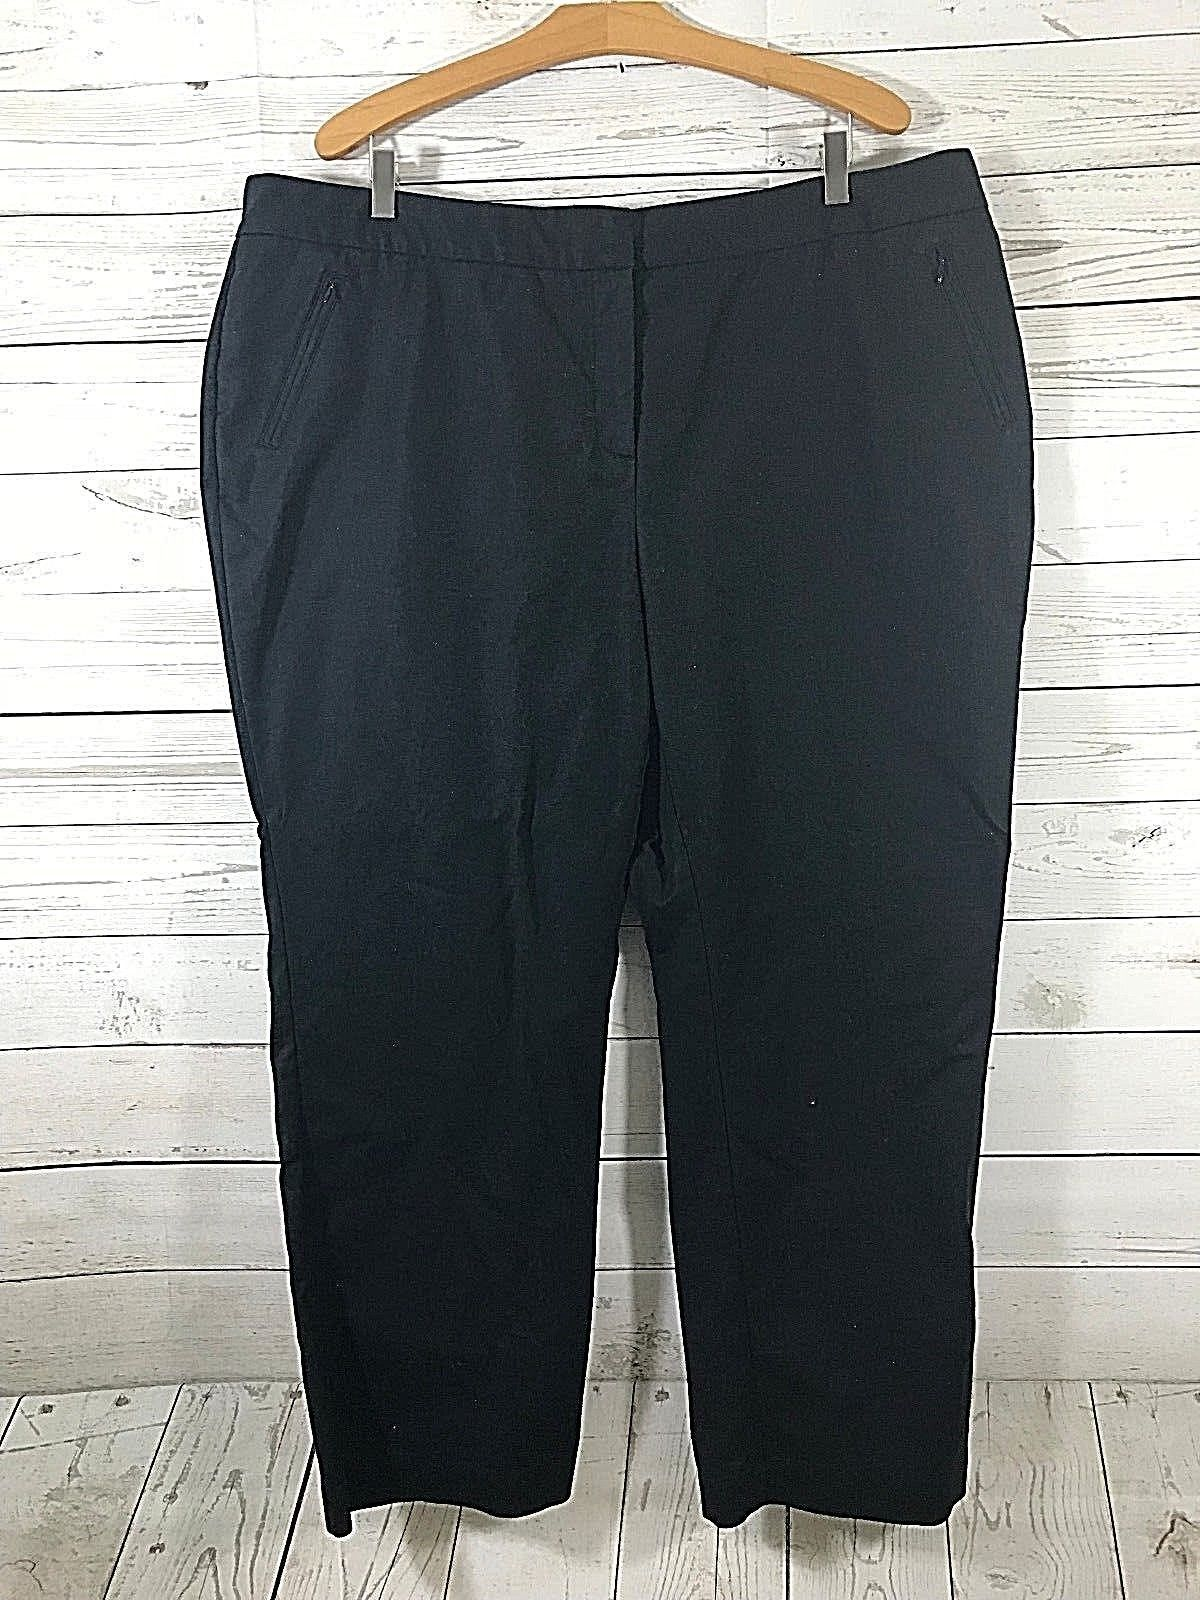 Charter Club Pant Shop Slimming Black Stretch Dress Pants Size 22WP Career